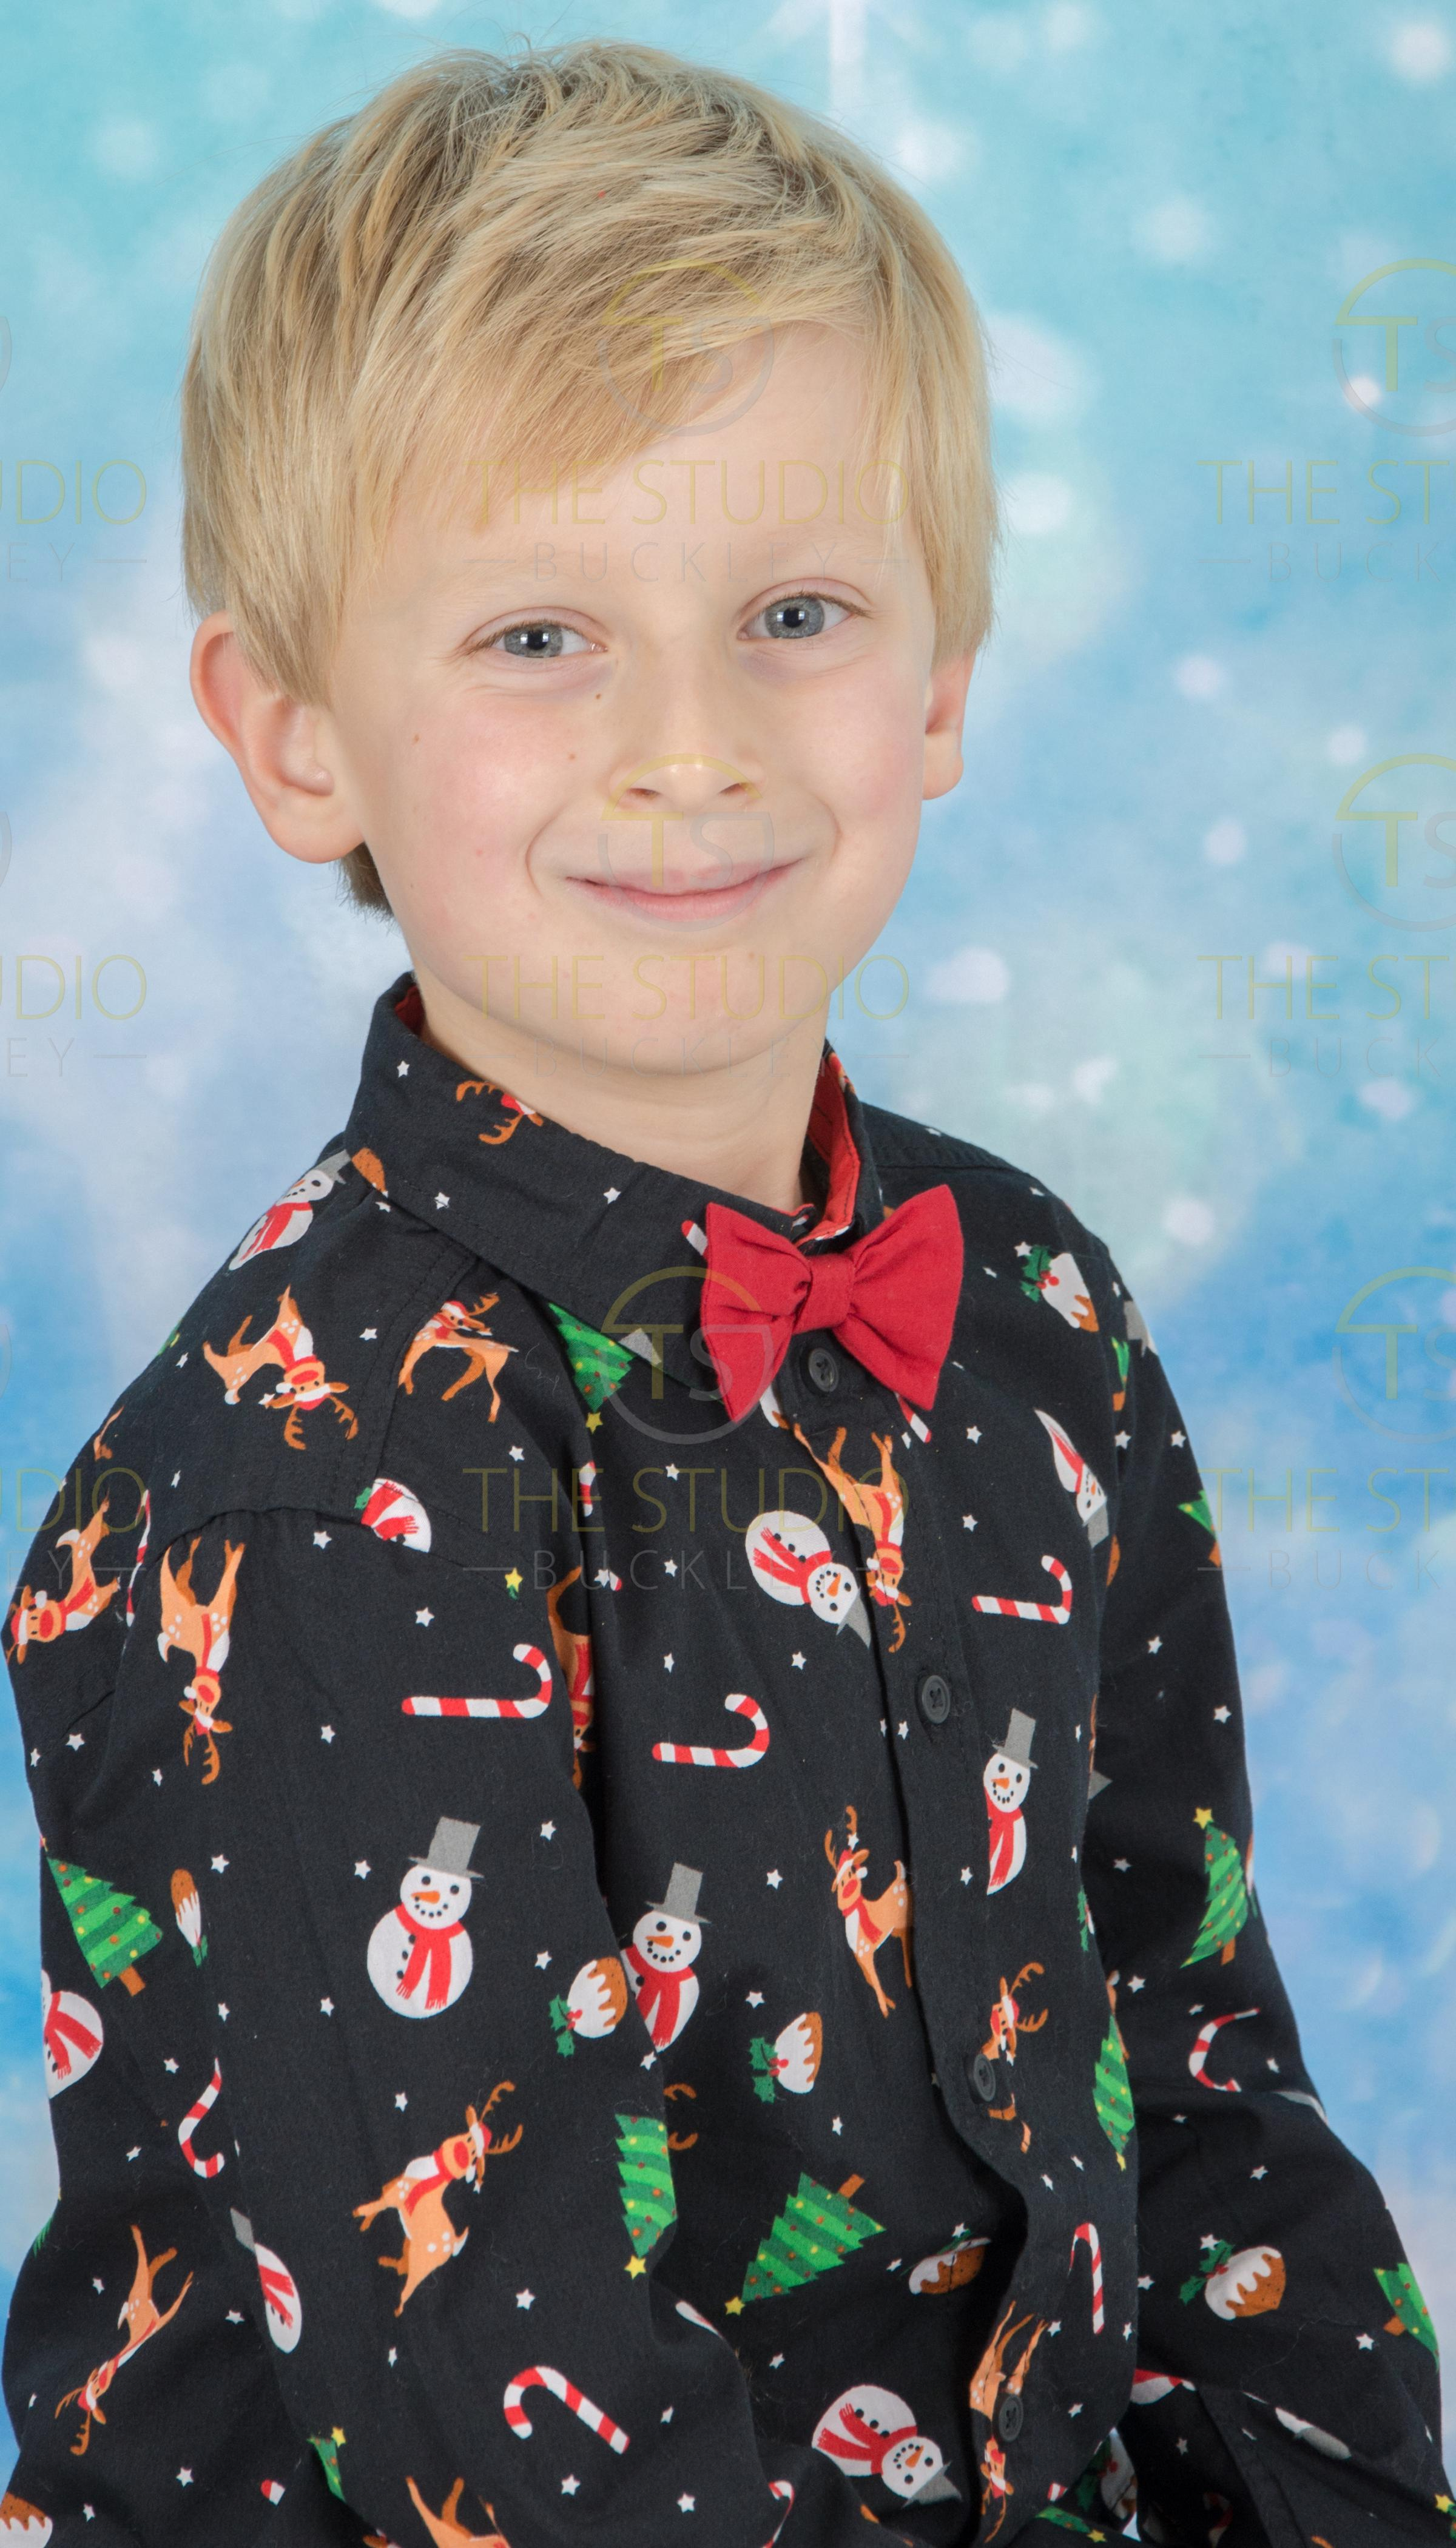 Connah's Quay primary school pupil to feature in Peter Pan Panto at Liverpool Empire